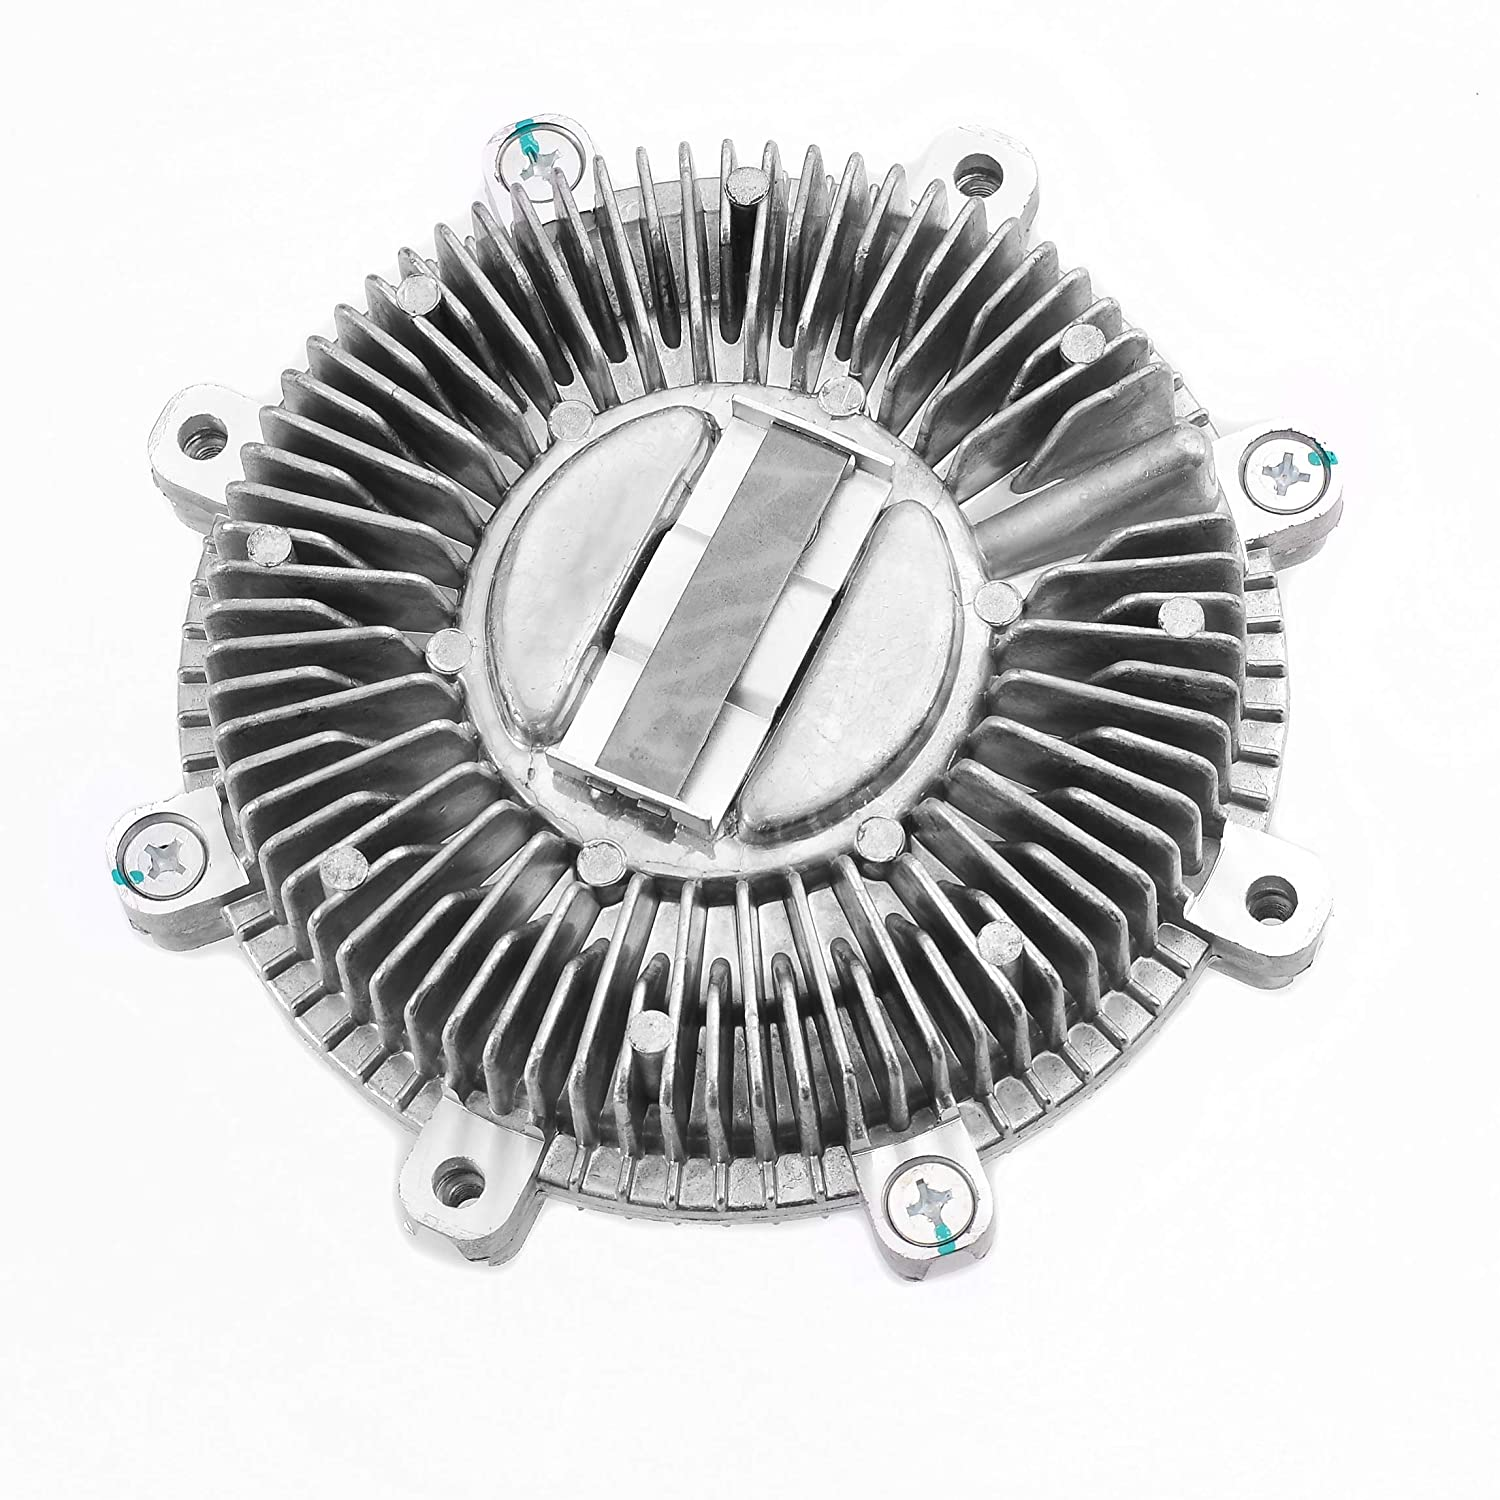 OE Replacement ADIGARAUTO 6601 Premium Engine Cooling Fan Clutch for Nissan Frontier Pathfinder Xterra NV1500 NV2500 NV3500 4.0L V6